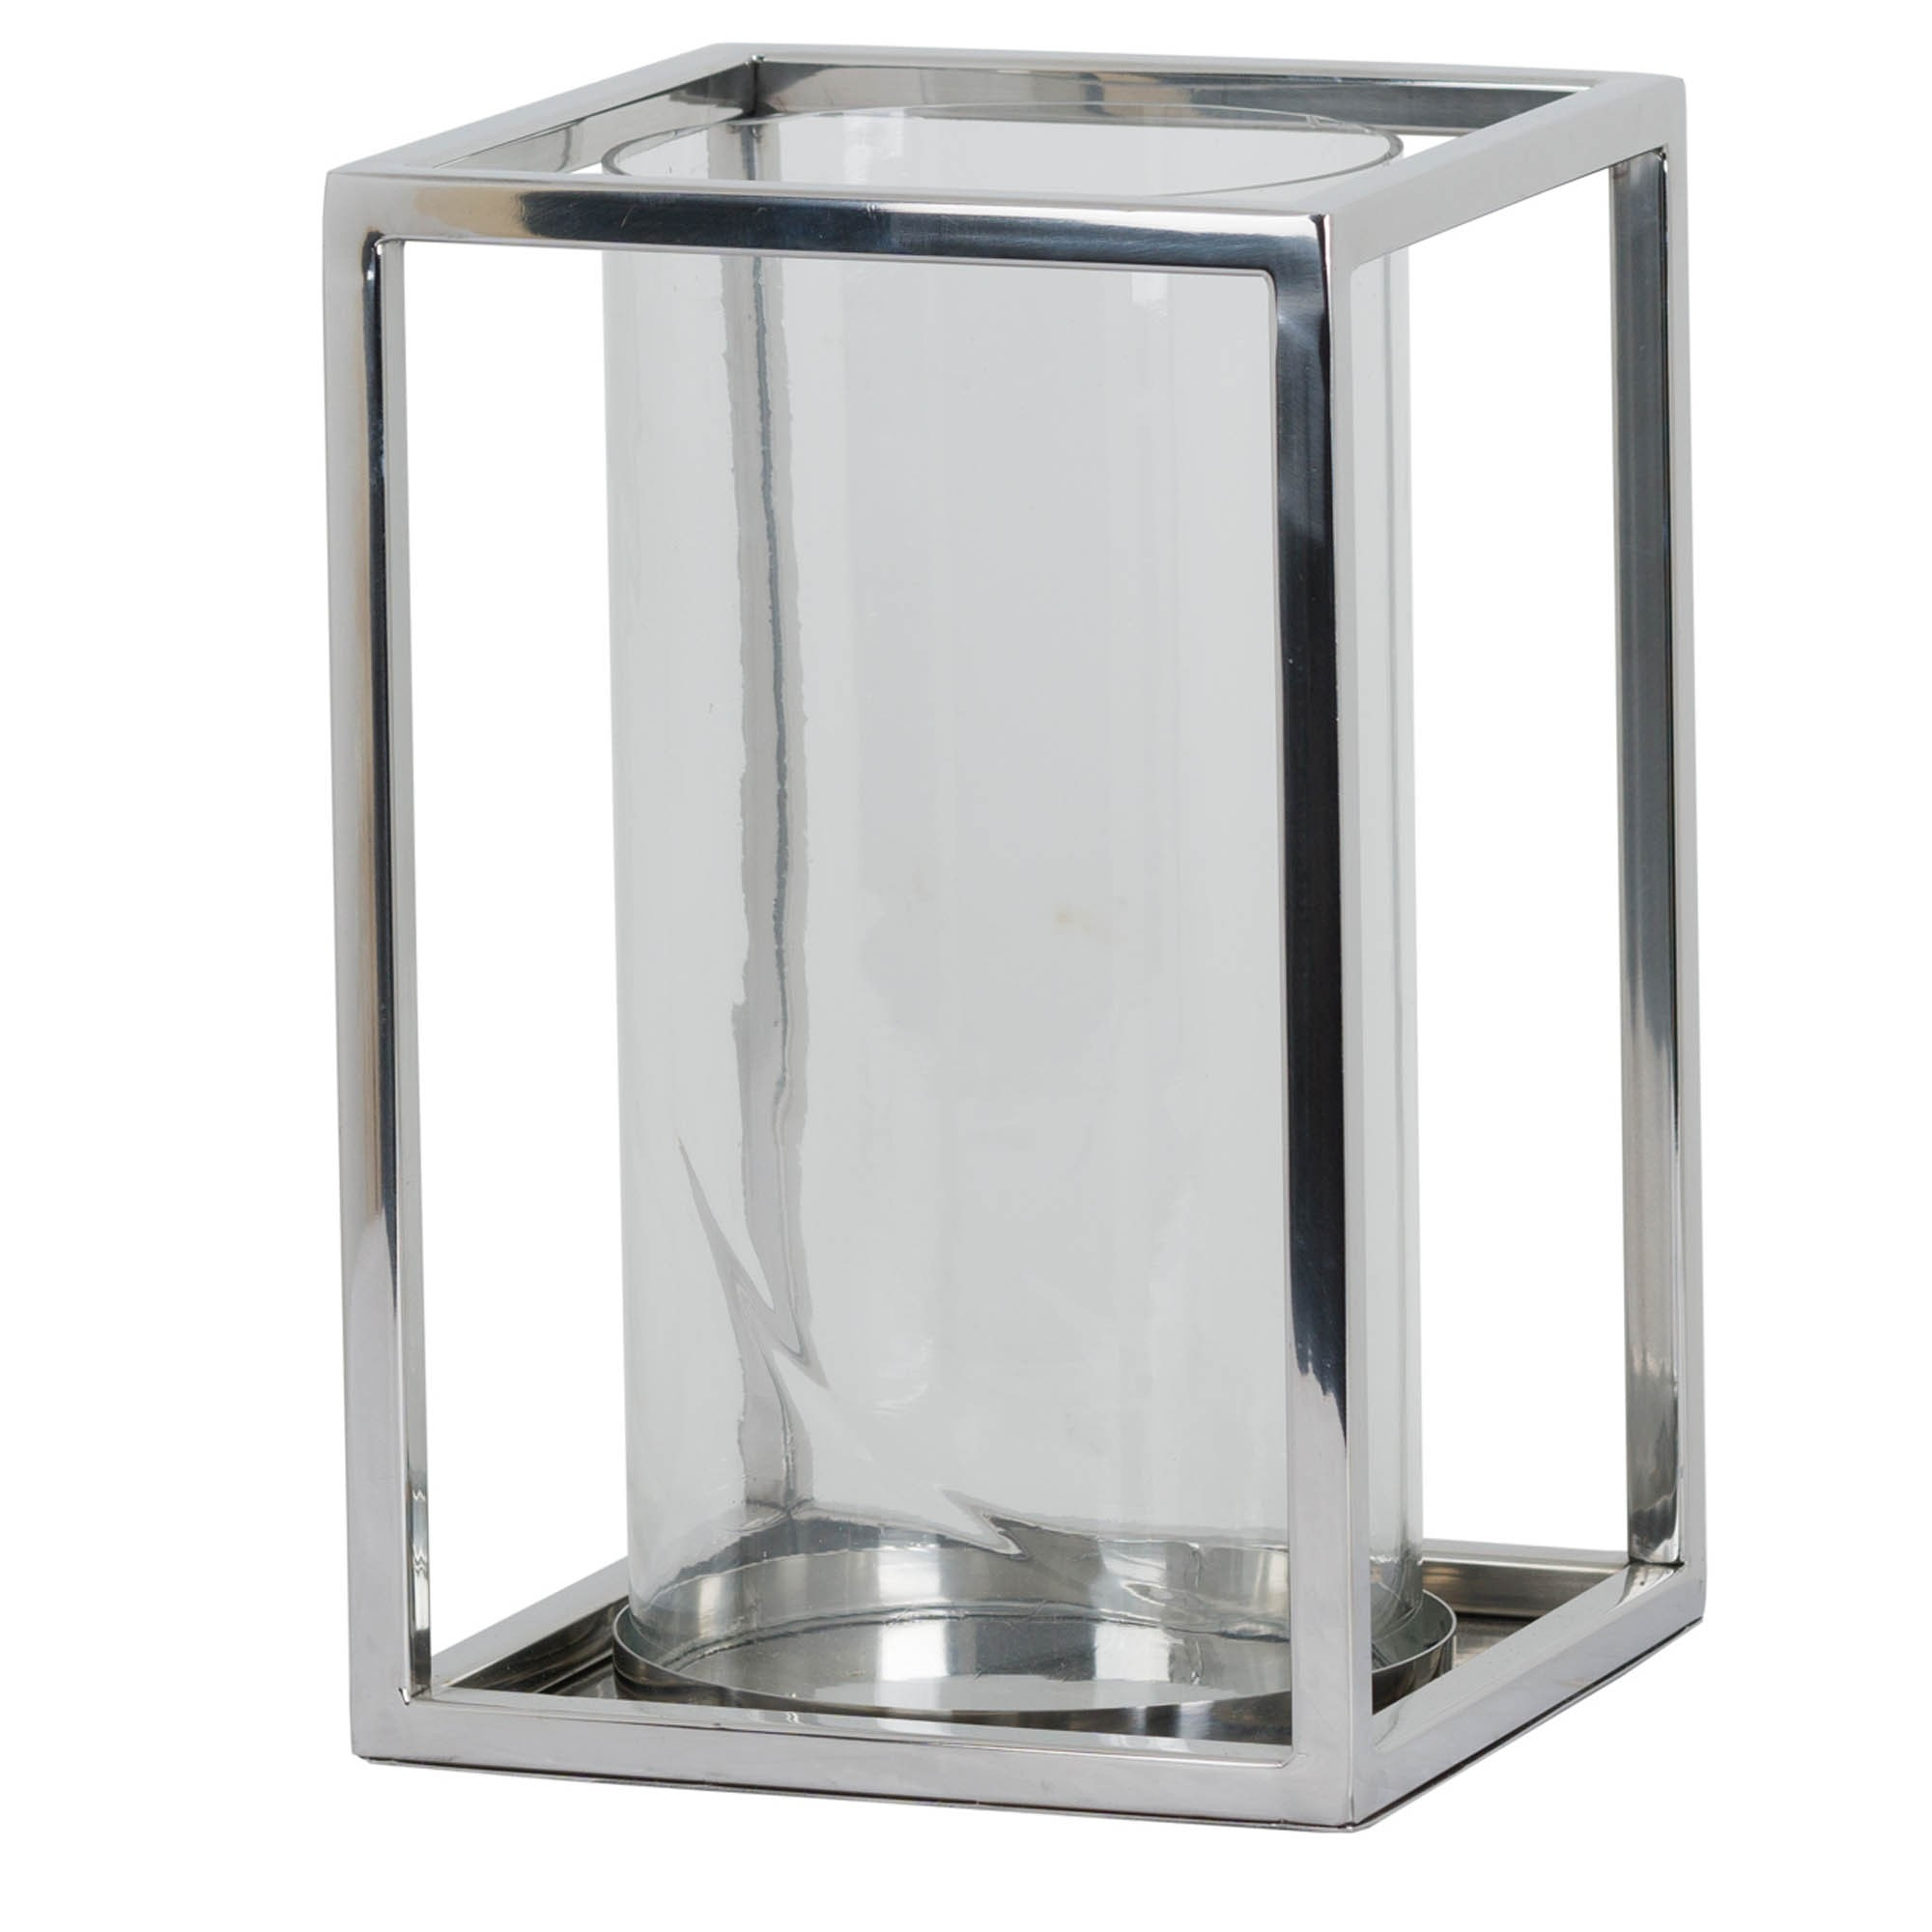 Contemporary Square Design Candle Holder Square Candle Holder